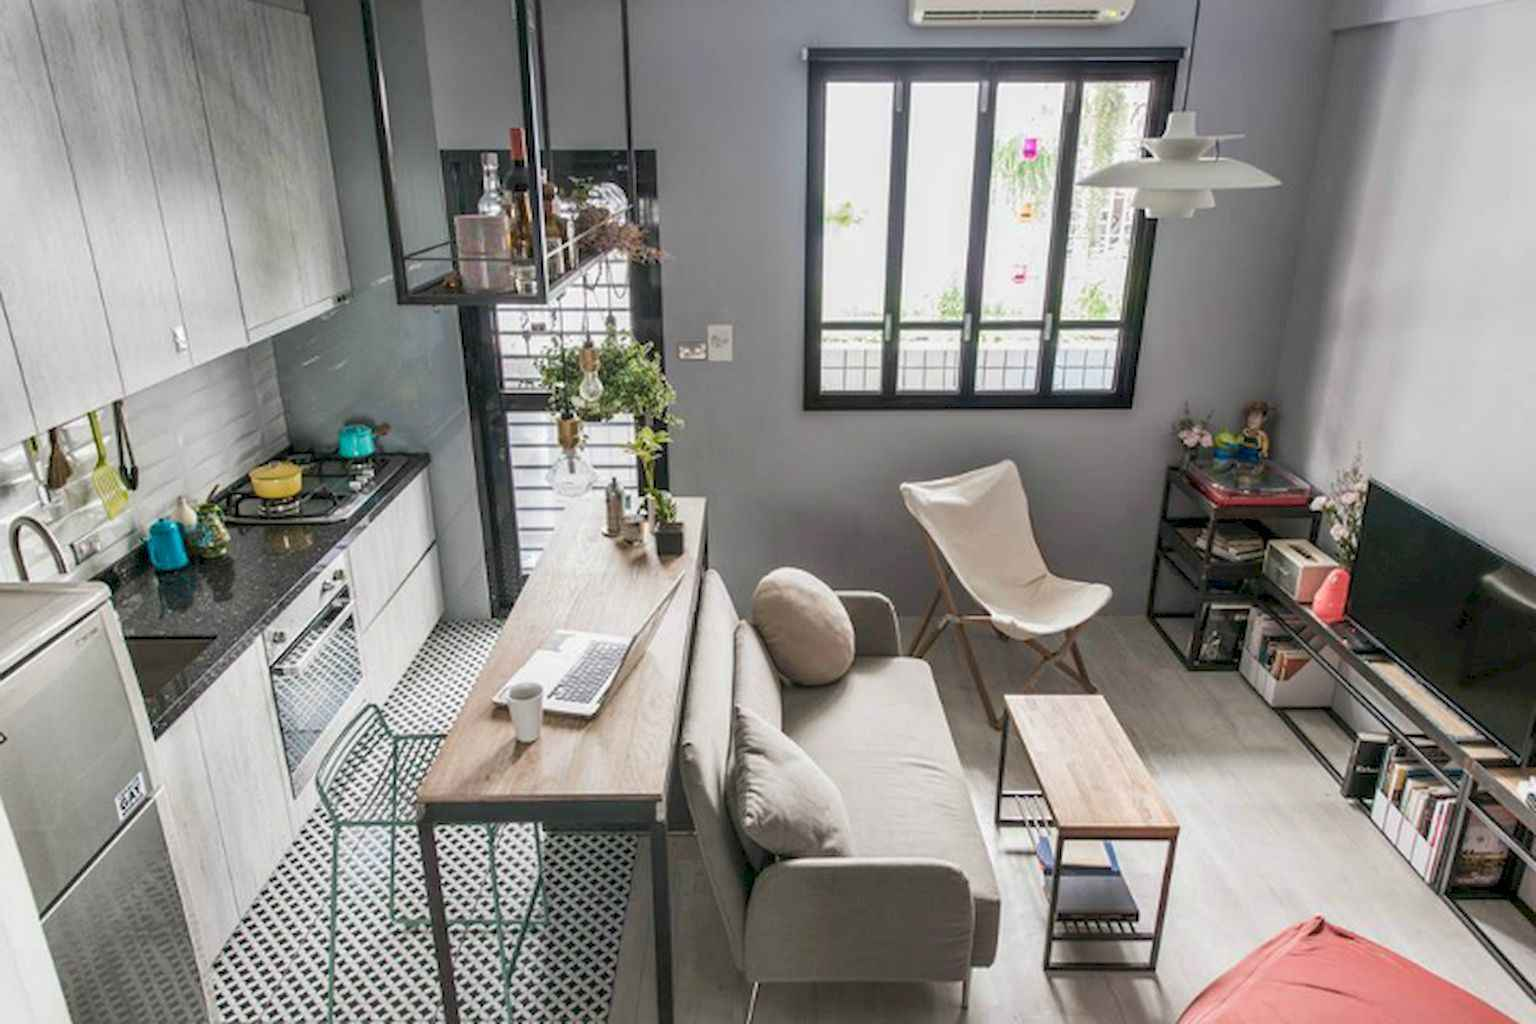 Cool small apartment decorating ideas on a budget (44)